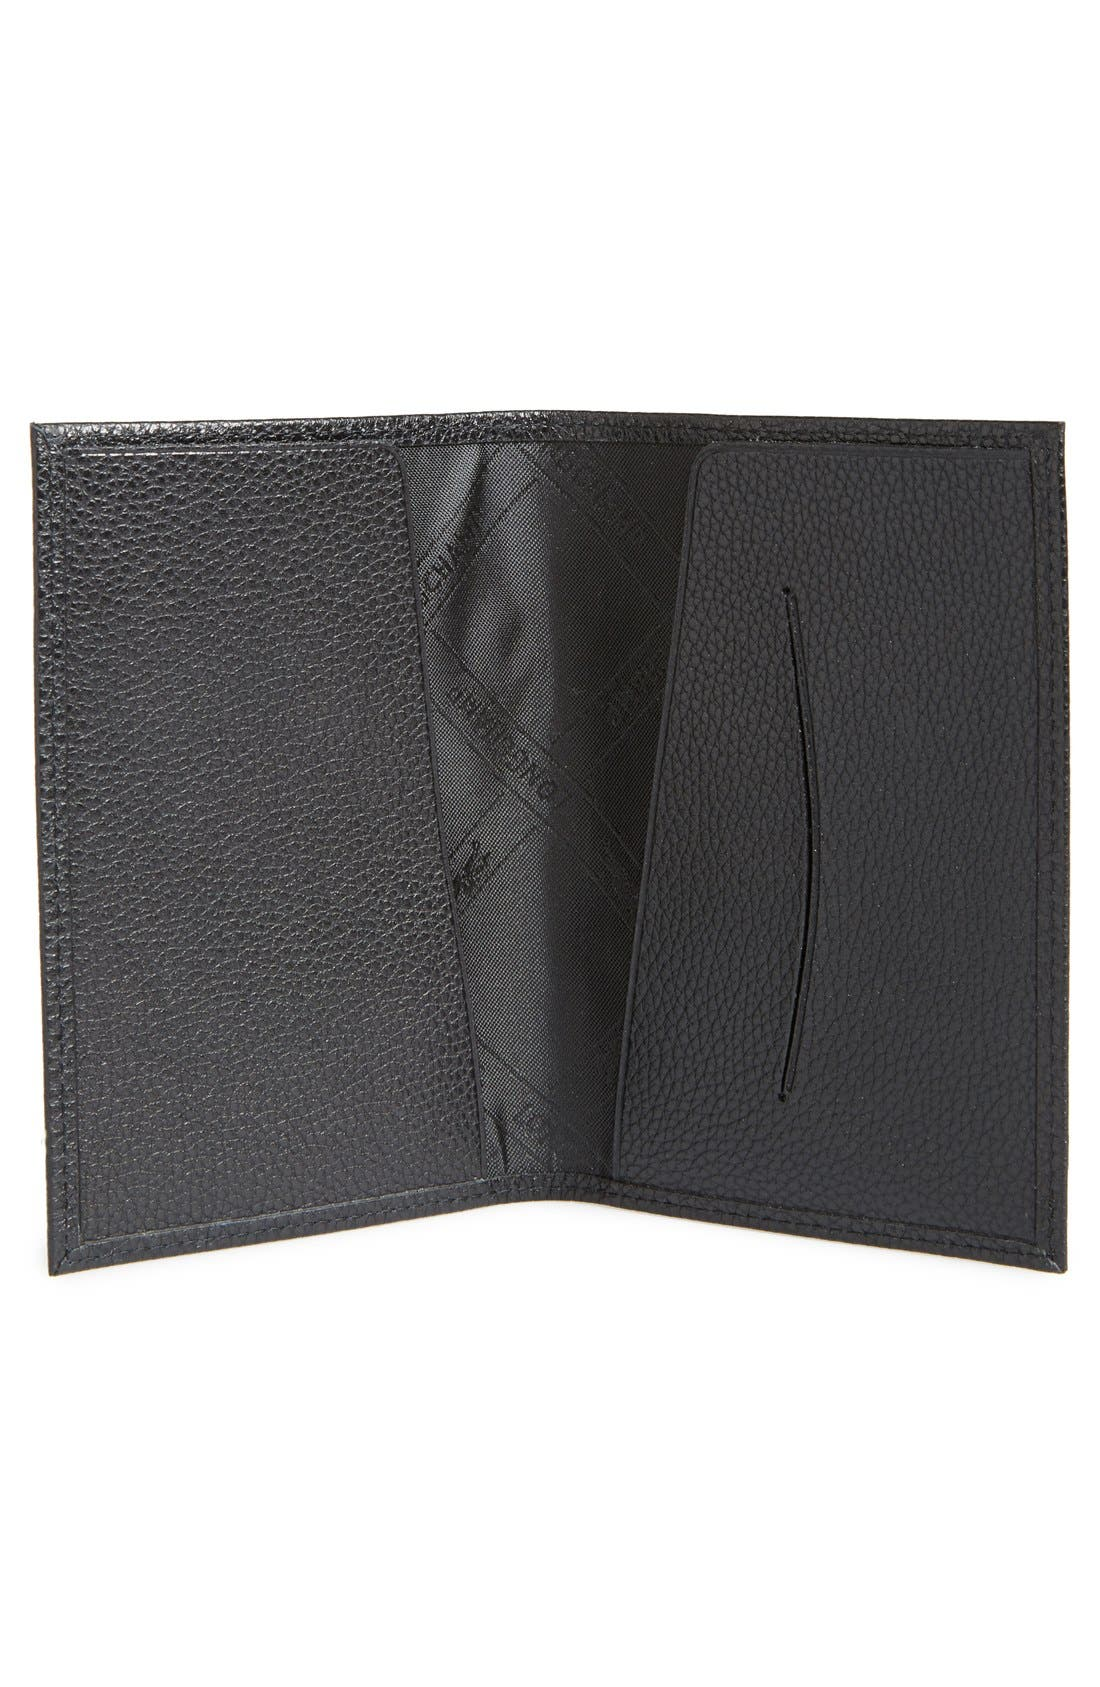 Leather Passport Case,                             Alternate thumbnail 2, color,                             BLACK